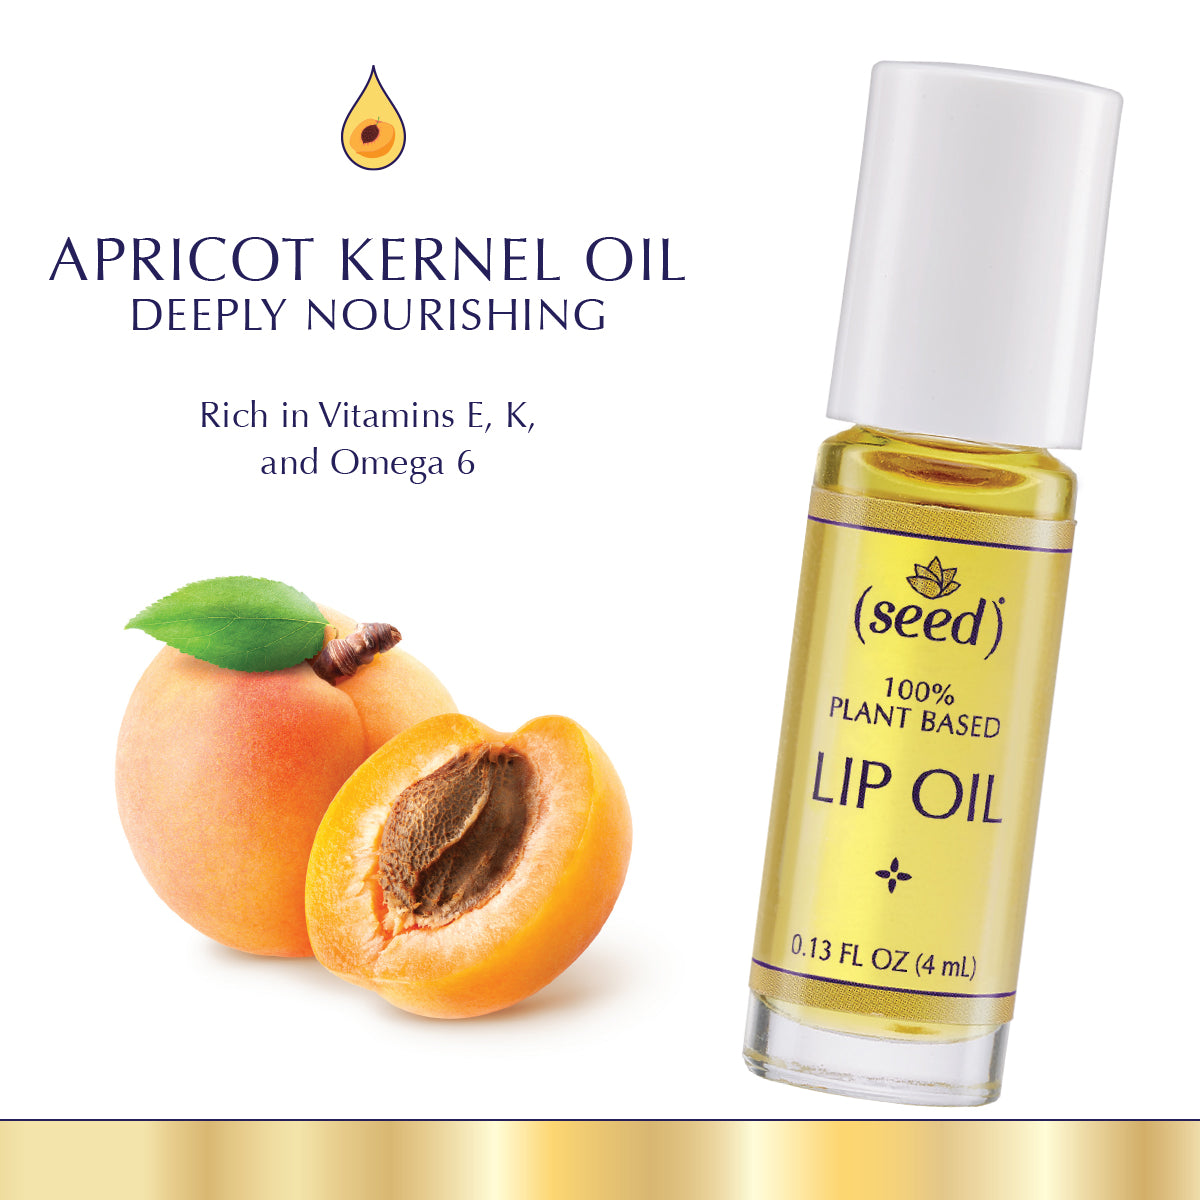 Seed Lip Oil is enriched with apricot kernel oil